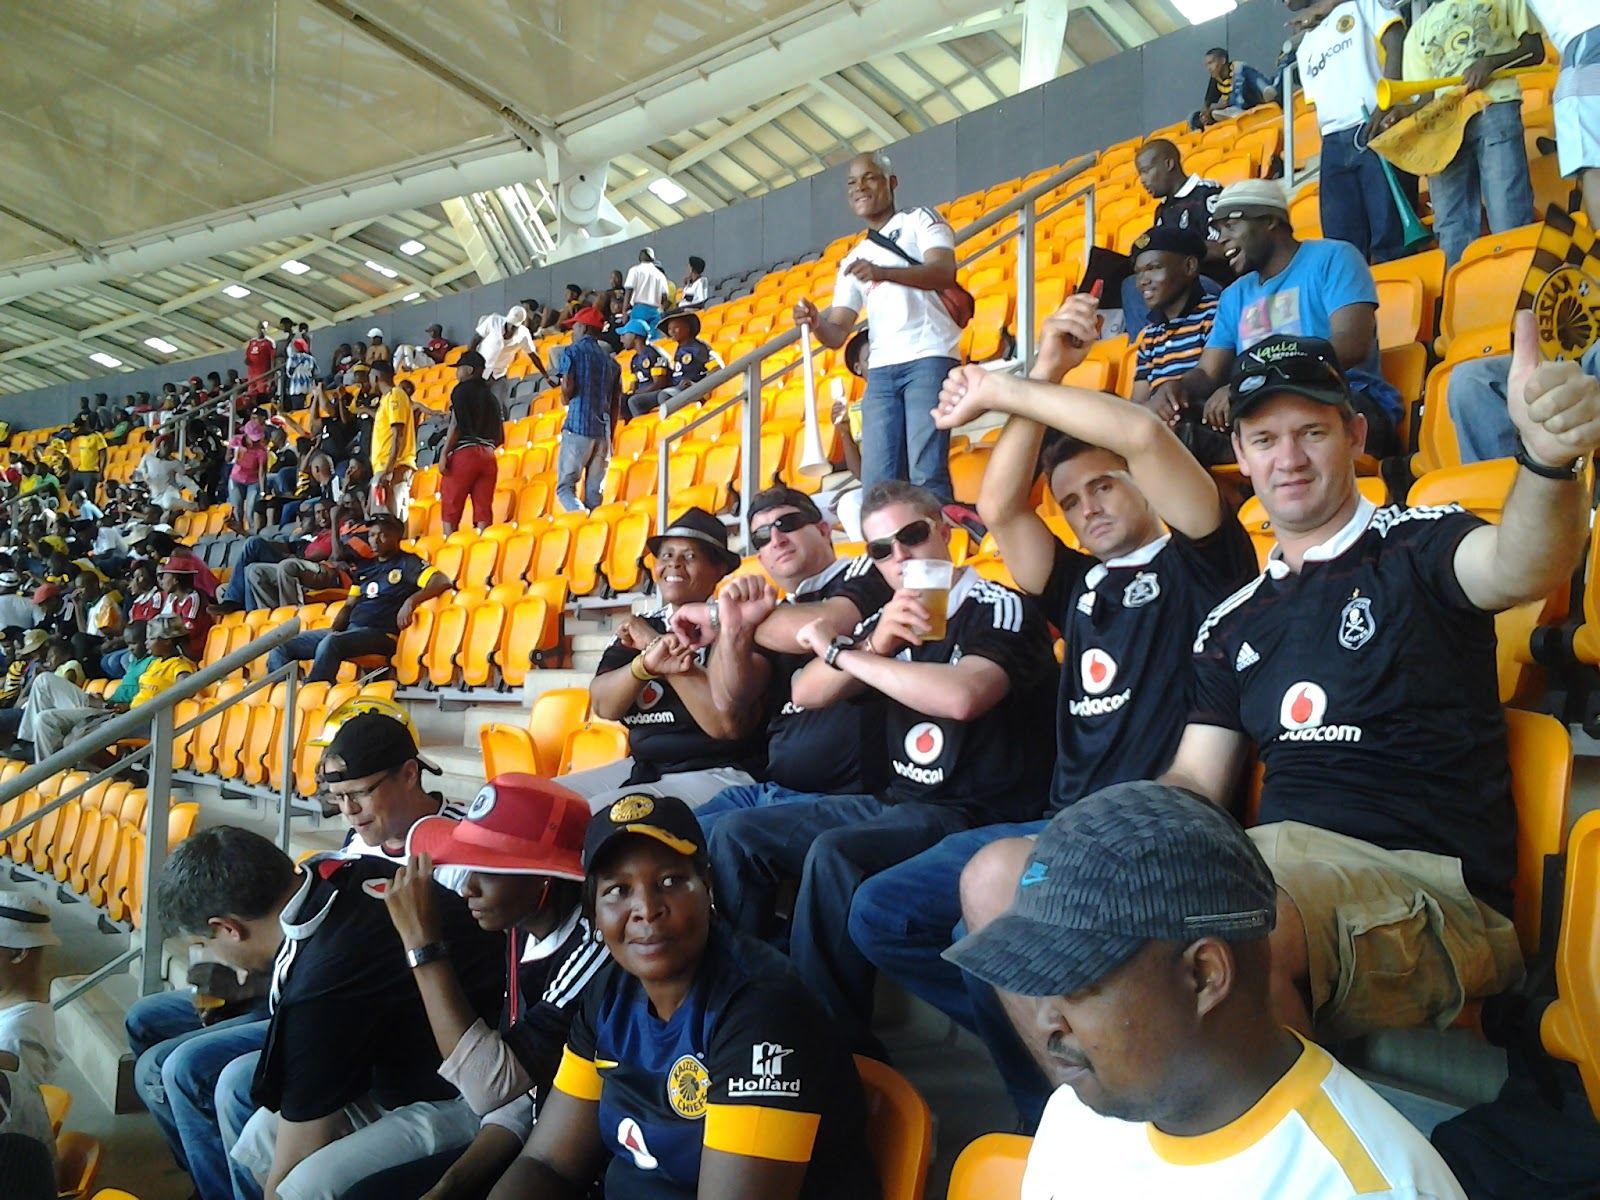 Pirates Vs Chiefs: Audio Visual Centre: Pirates Vs Chiefs